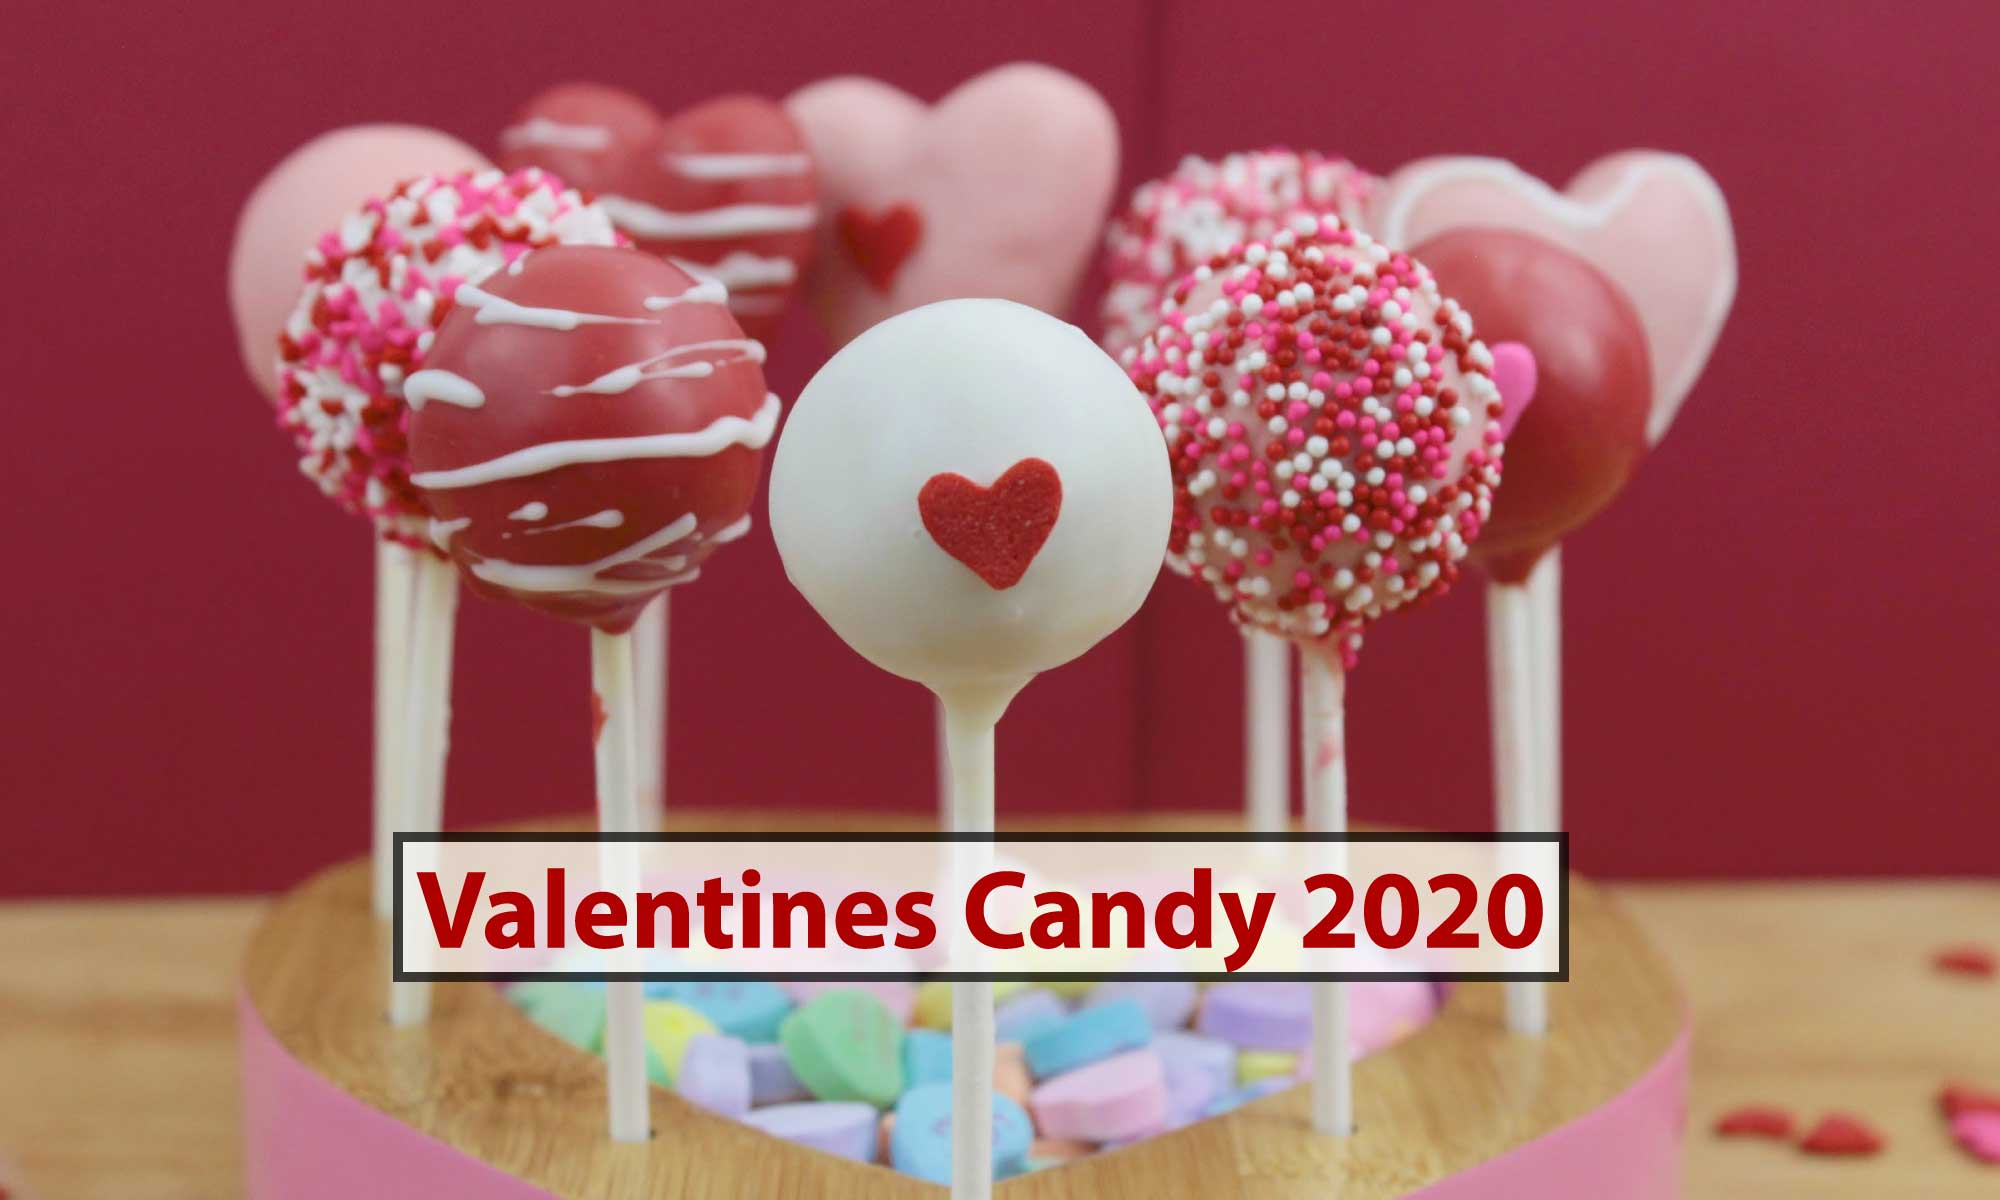 Valentines-Candy-2020